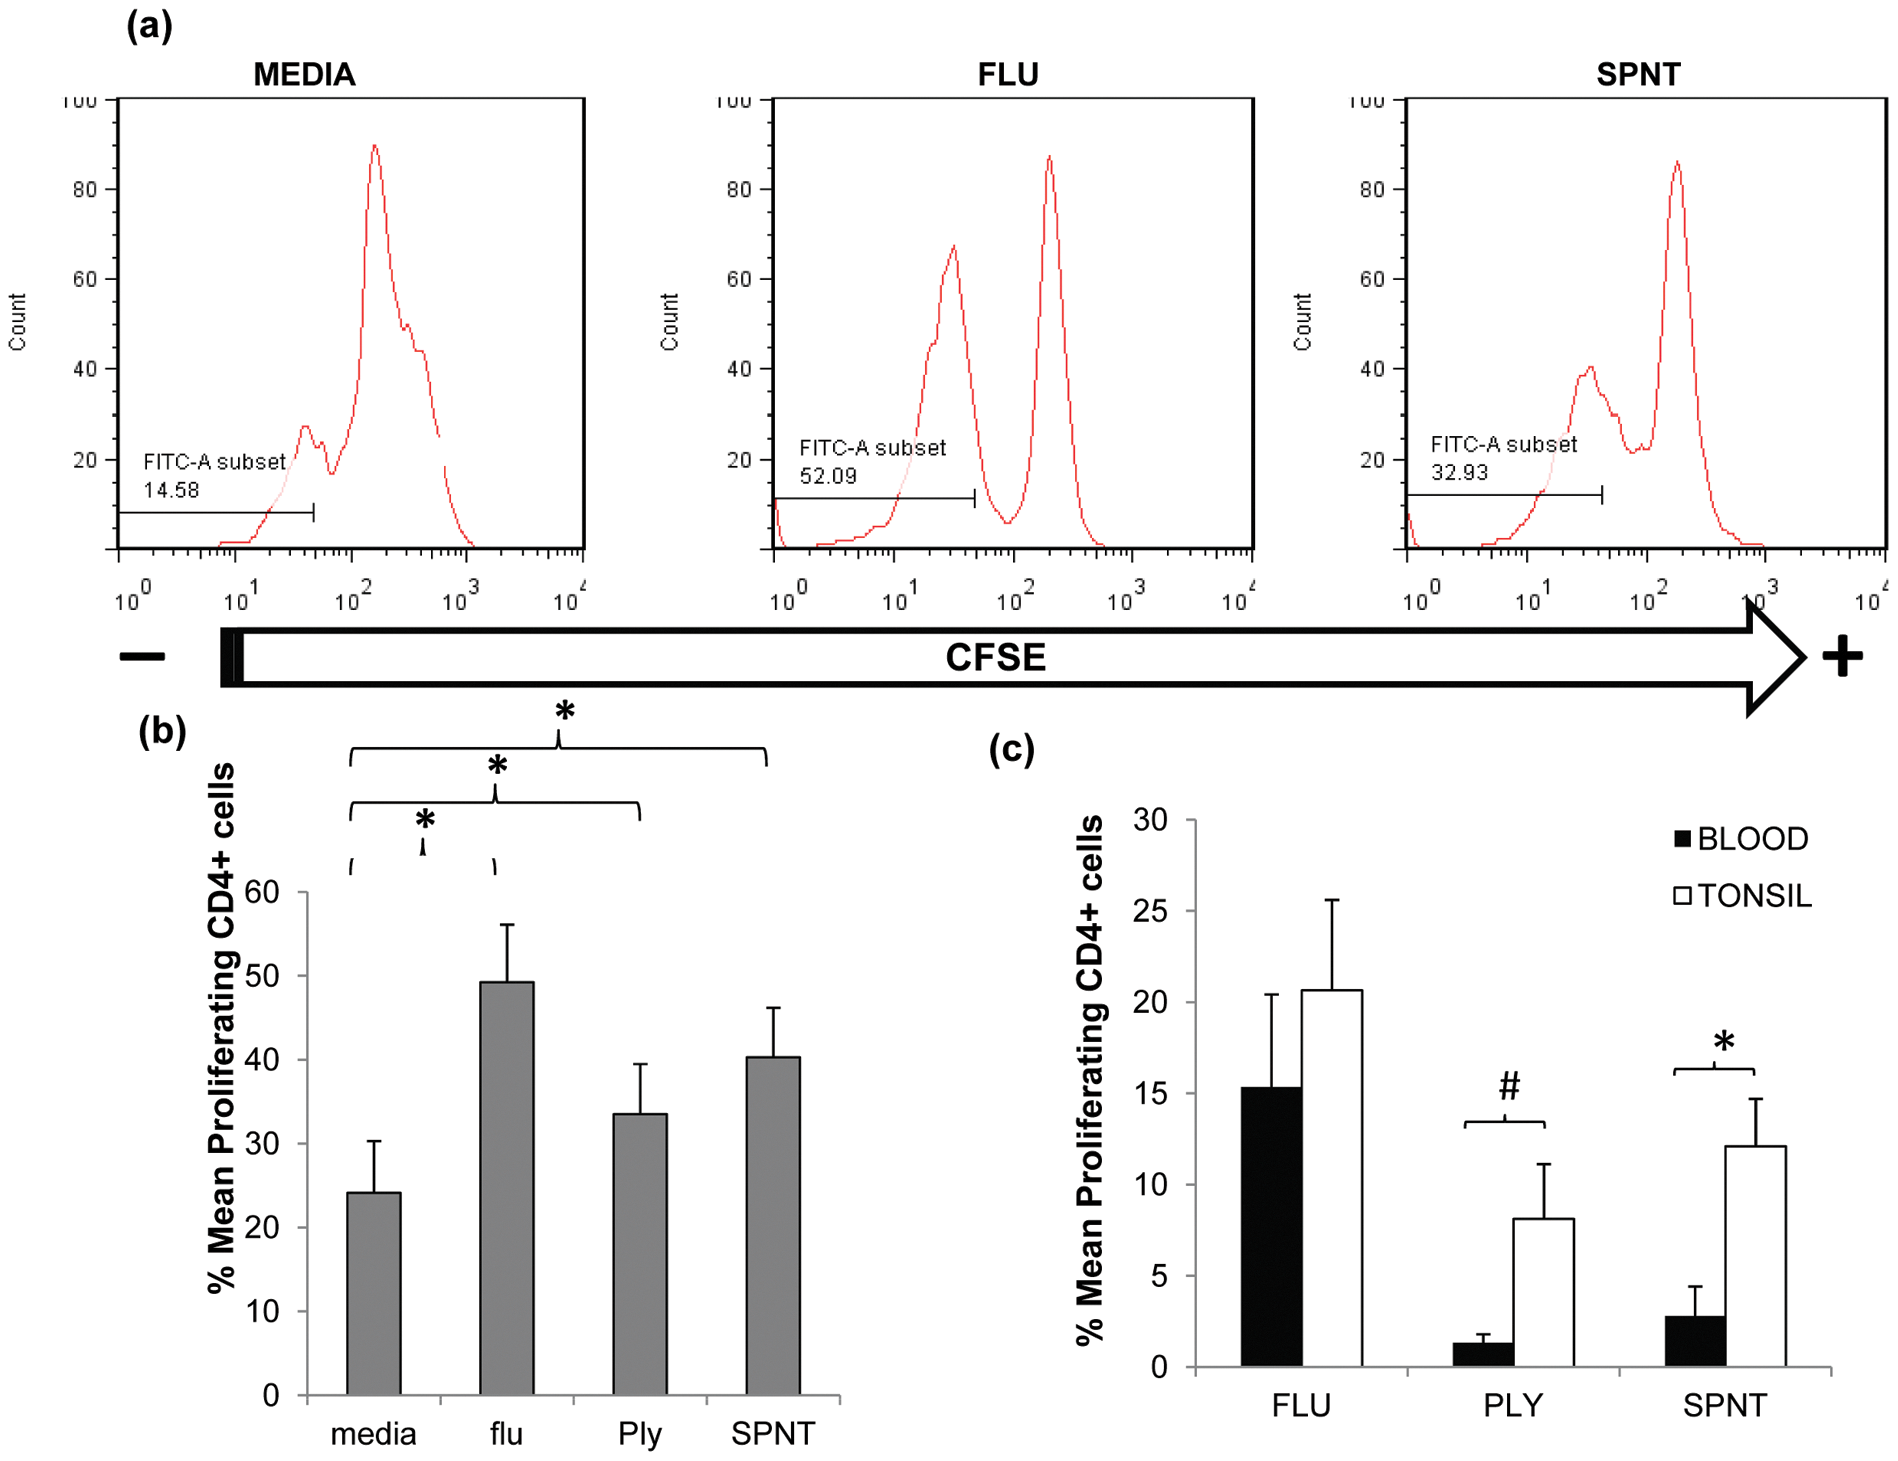 Anti-pneumococcal CD4 T cells proliferative responses in adult tonsils and blood during <i>in vitro</i> pneumococcal peptide antigen challenge.